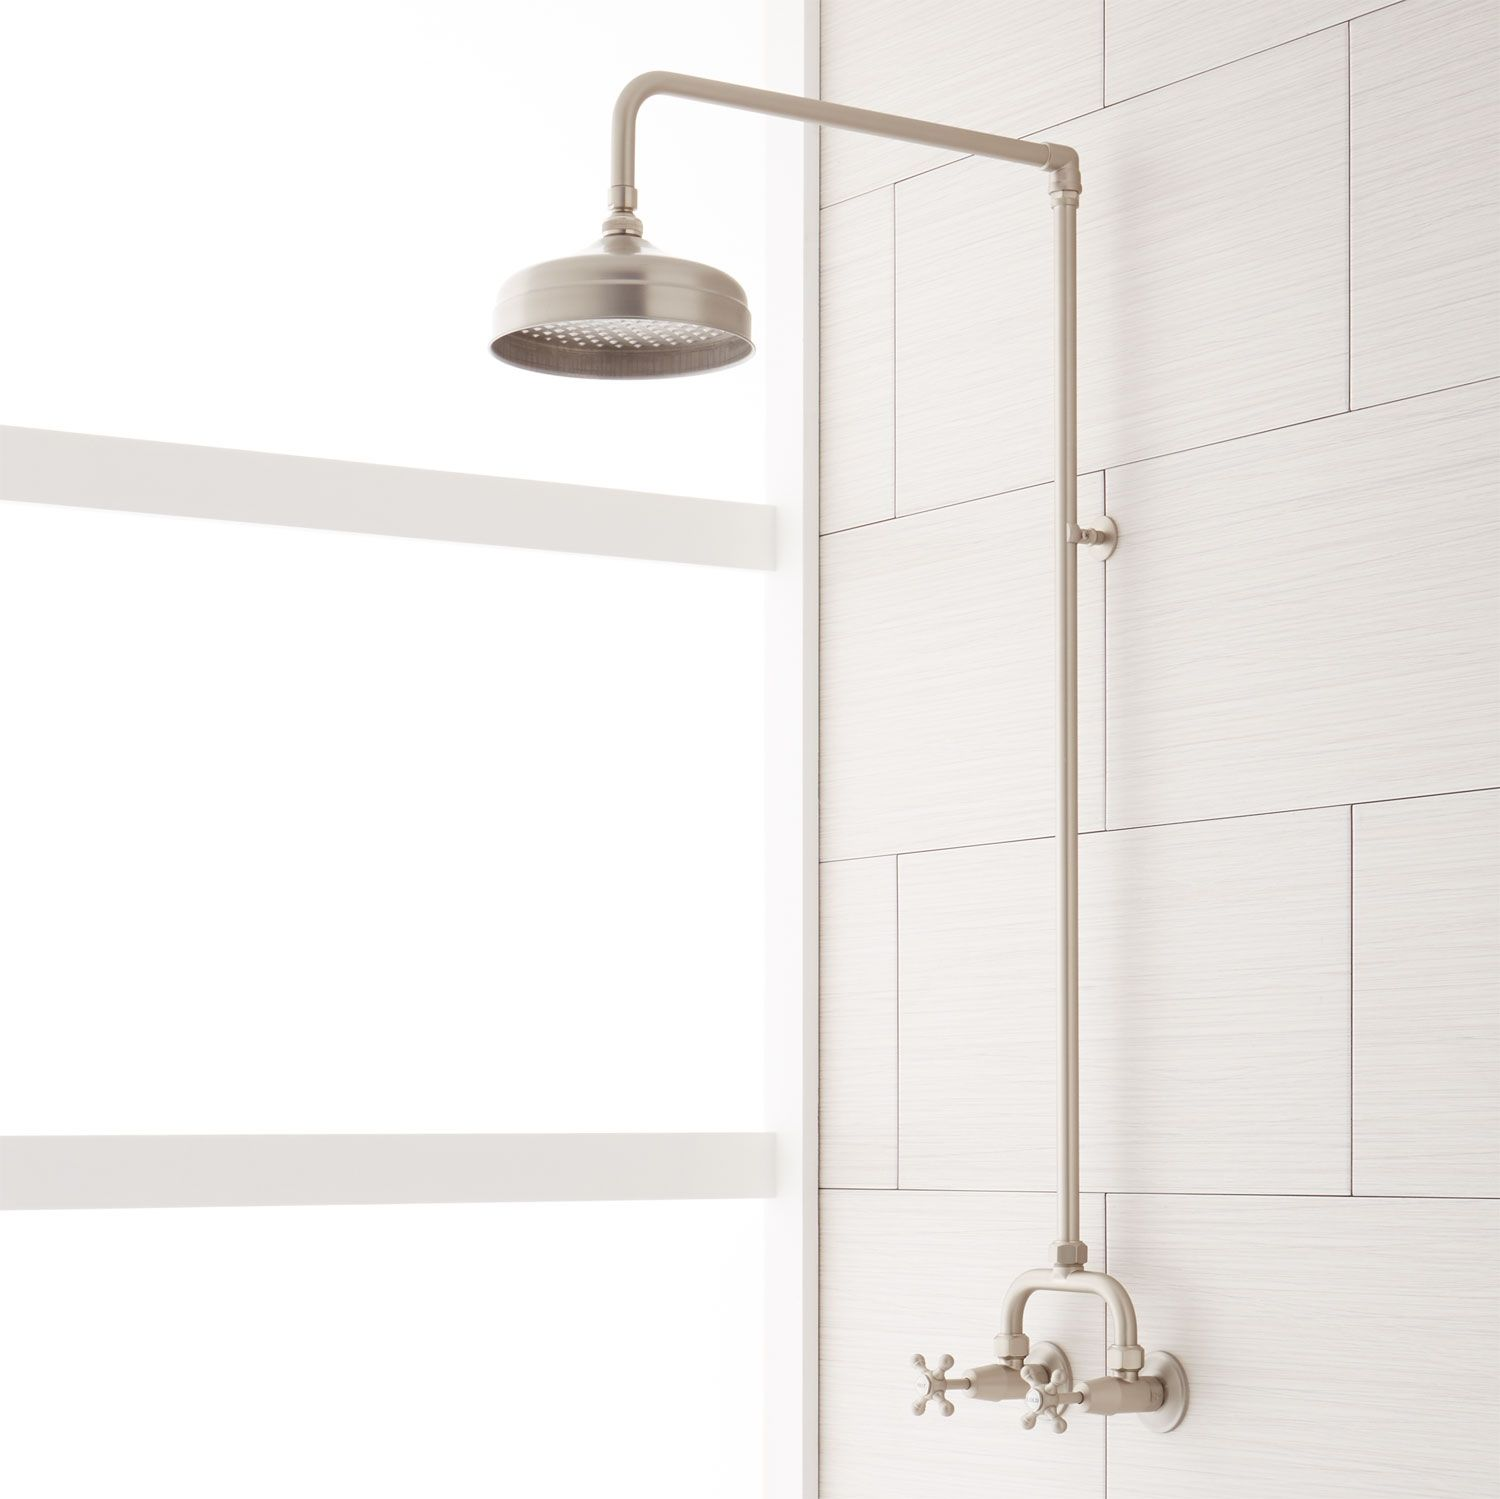 Stainless Steel Pull Chain Wall Mount Outdoor Shower Outdoor